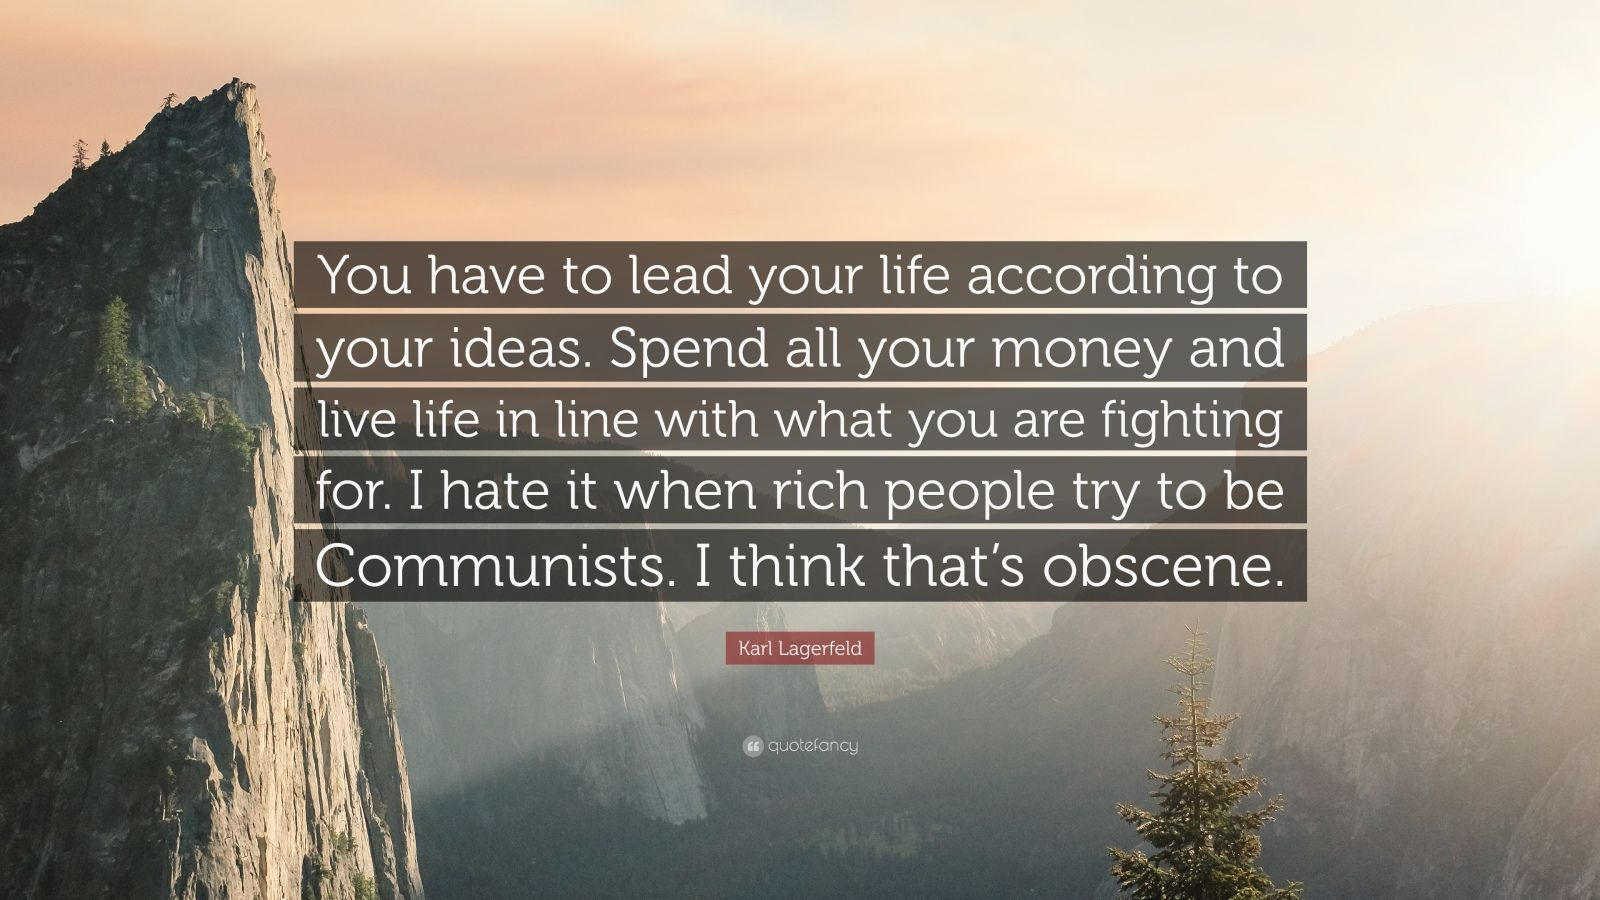 """Karl Lagerfeld Quote: """"You have to lead your life according to your ideas. Spend all your money and live life in line with what you are fighting for. I hate it when rich people try to be Communists. I think that's obscene."""""""